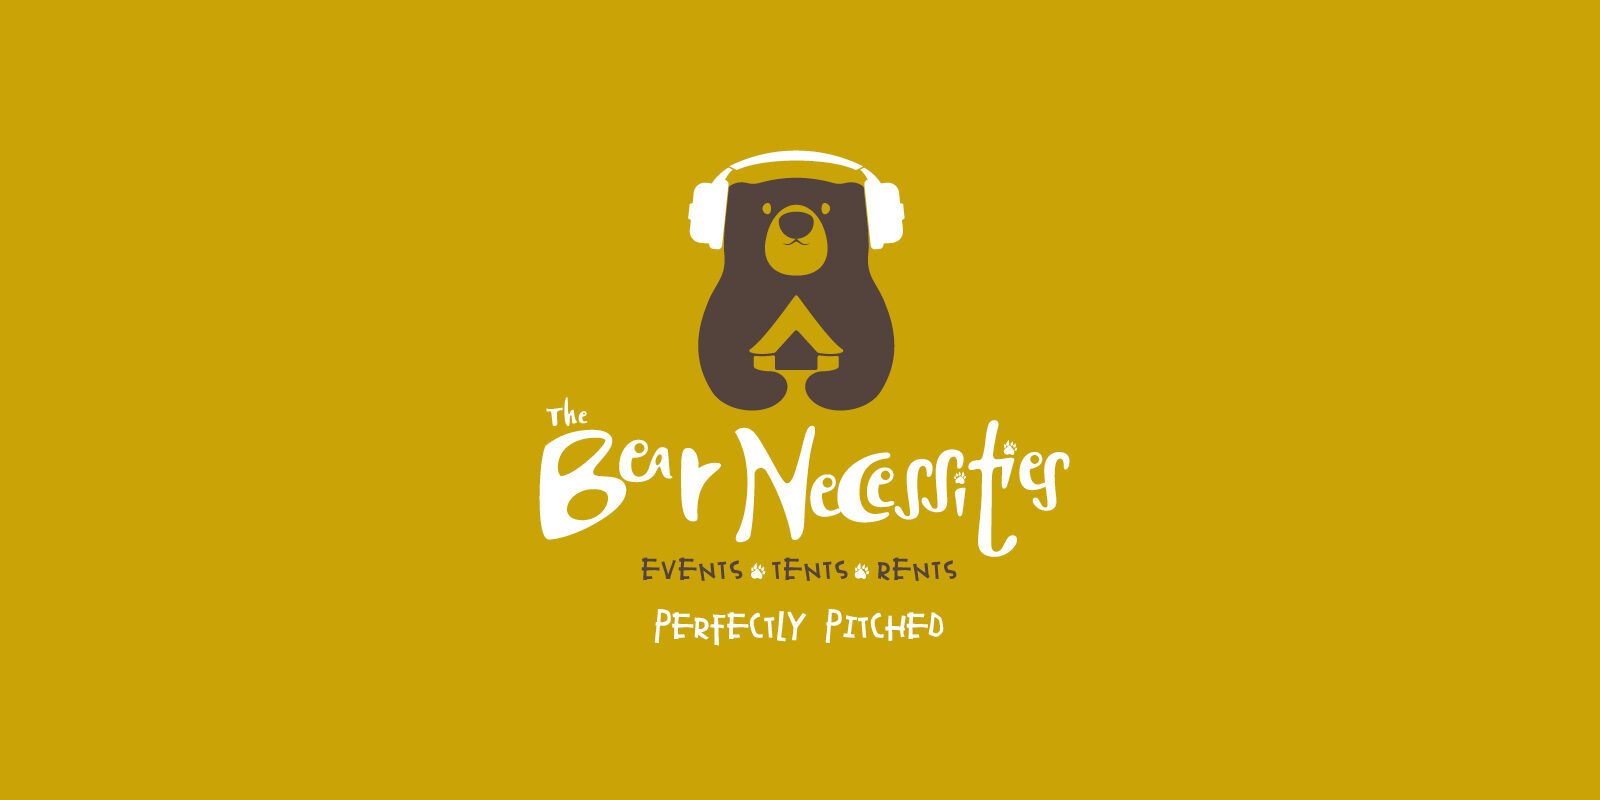 The Bear Necessities Co.